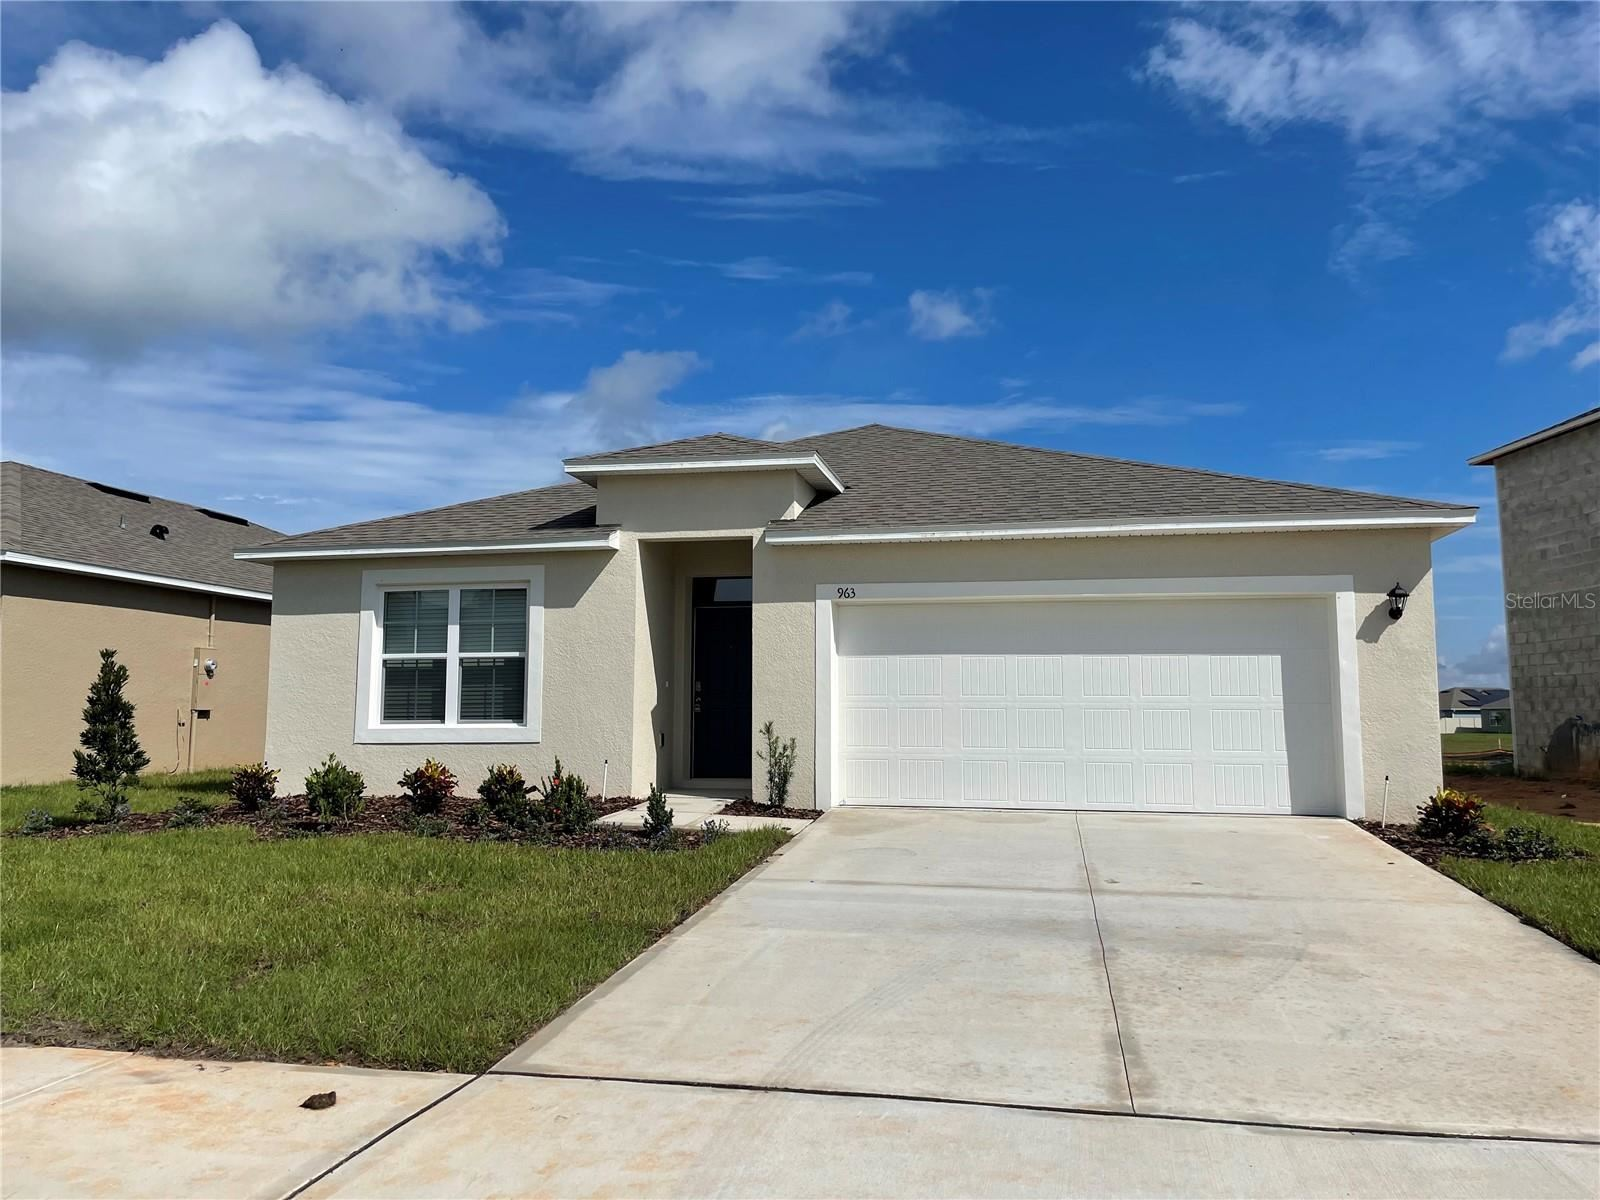 Photo of 936 BROOKLET DRIVE, HAINES CITY, FL 33844 (MLS # O5975639)